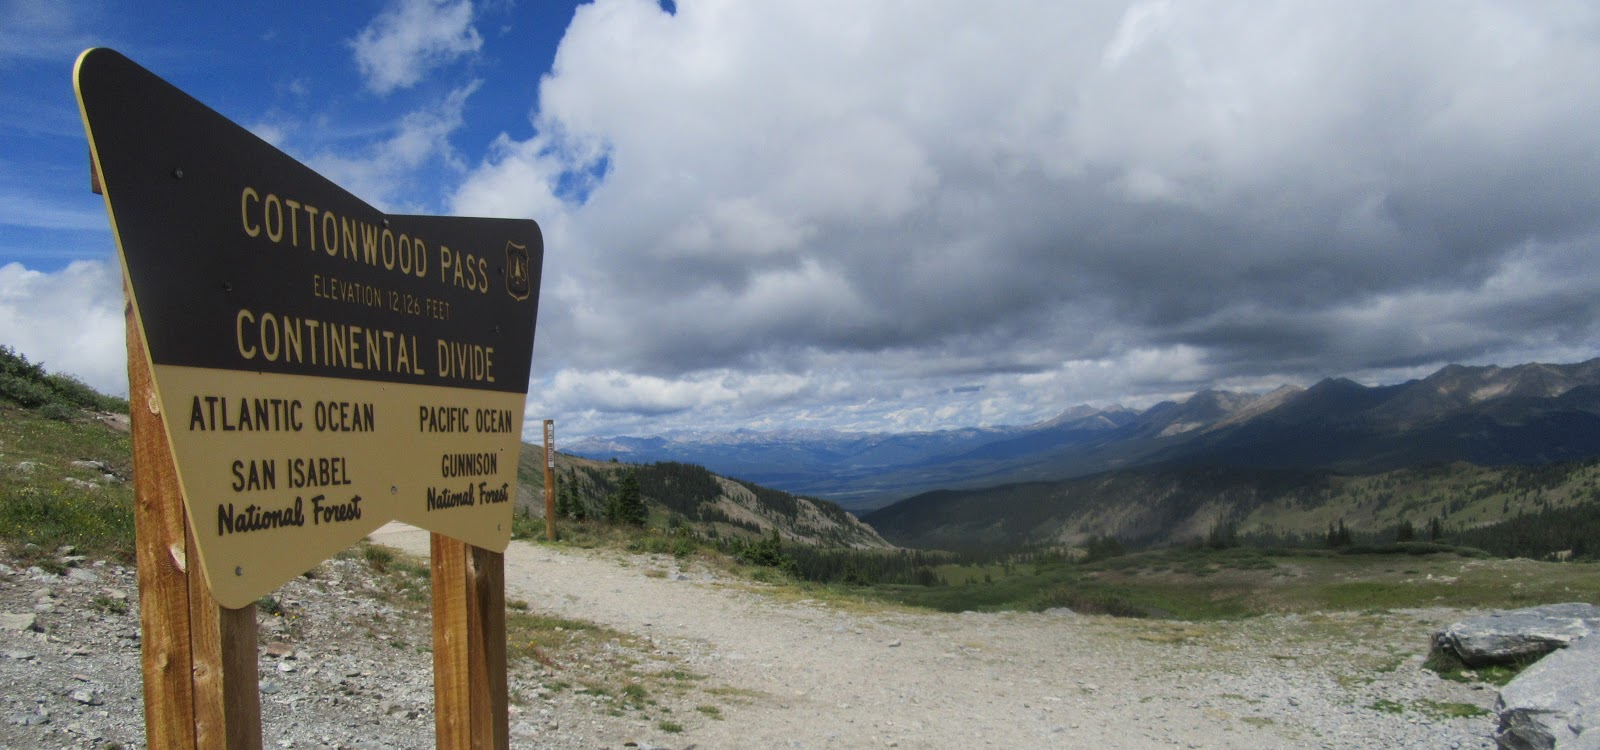 Bike climb to Cottonwood Pass - Continental Divide sign.